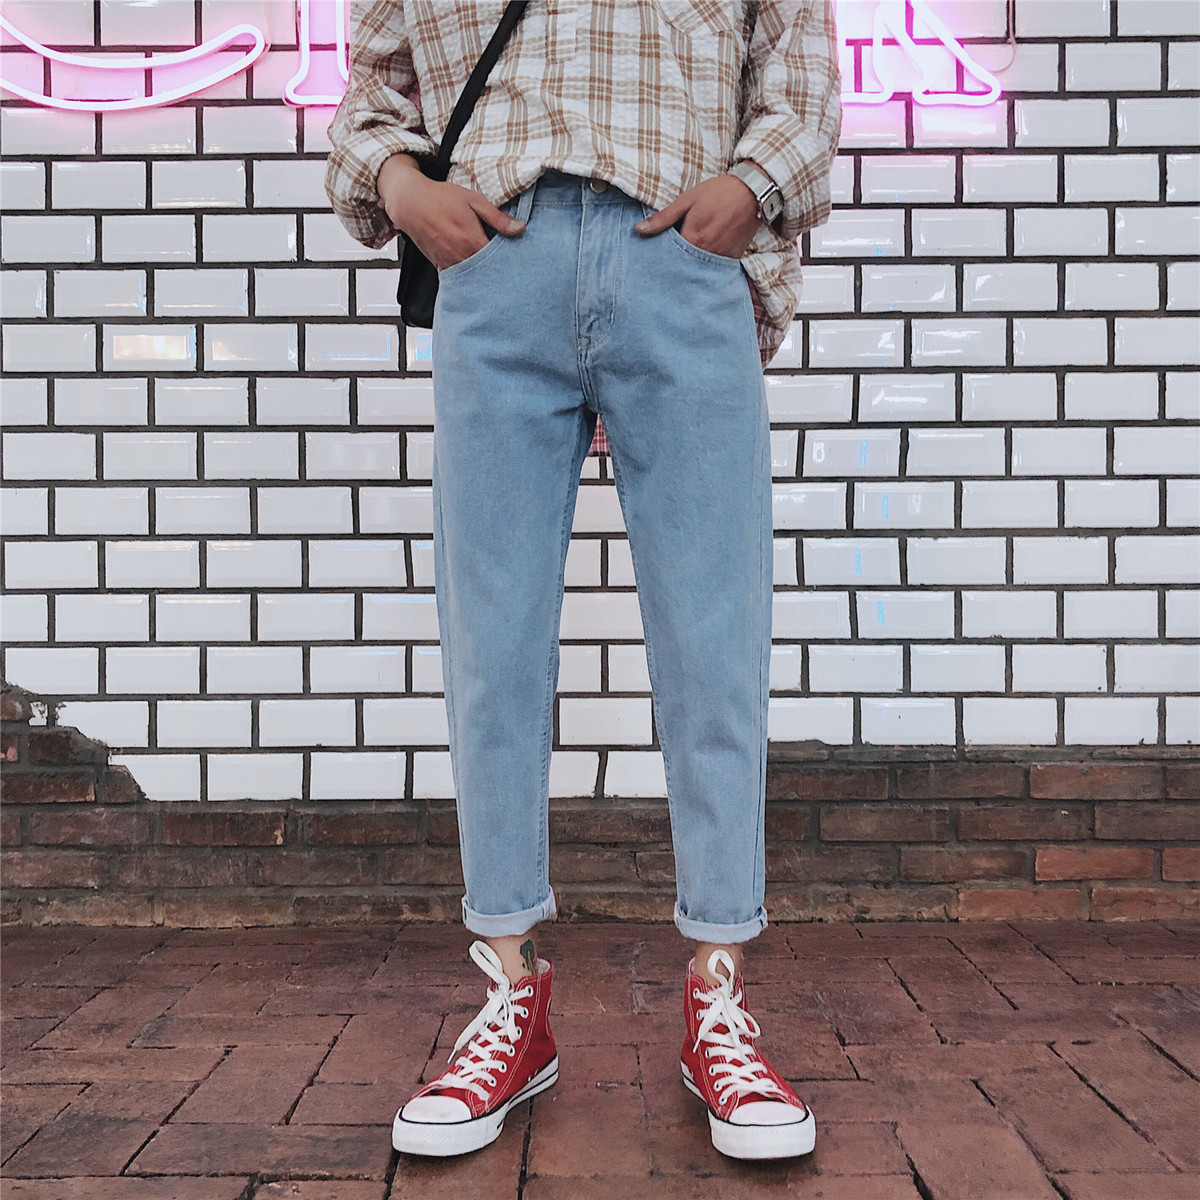 Fashion Casual Mens Jeans Spring And Autumn New M-5XL Solid Color Loose Harem Pants Black Light Blue Personality Youth Popular